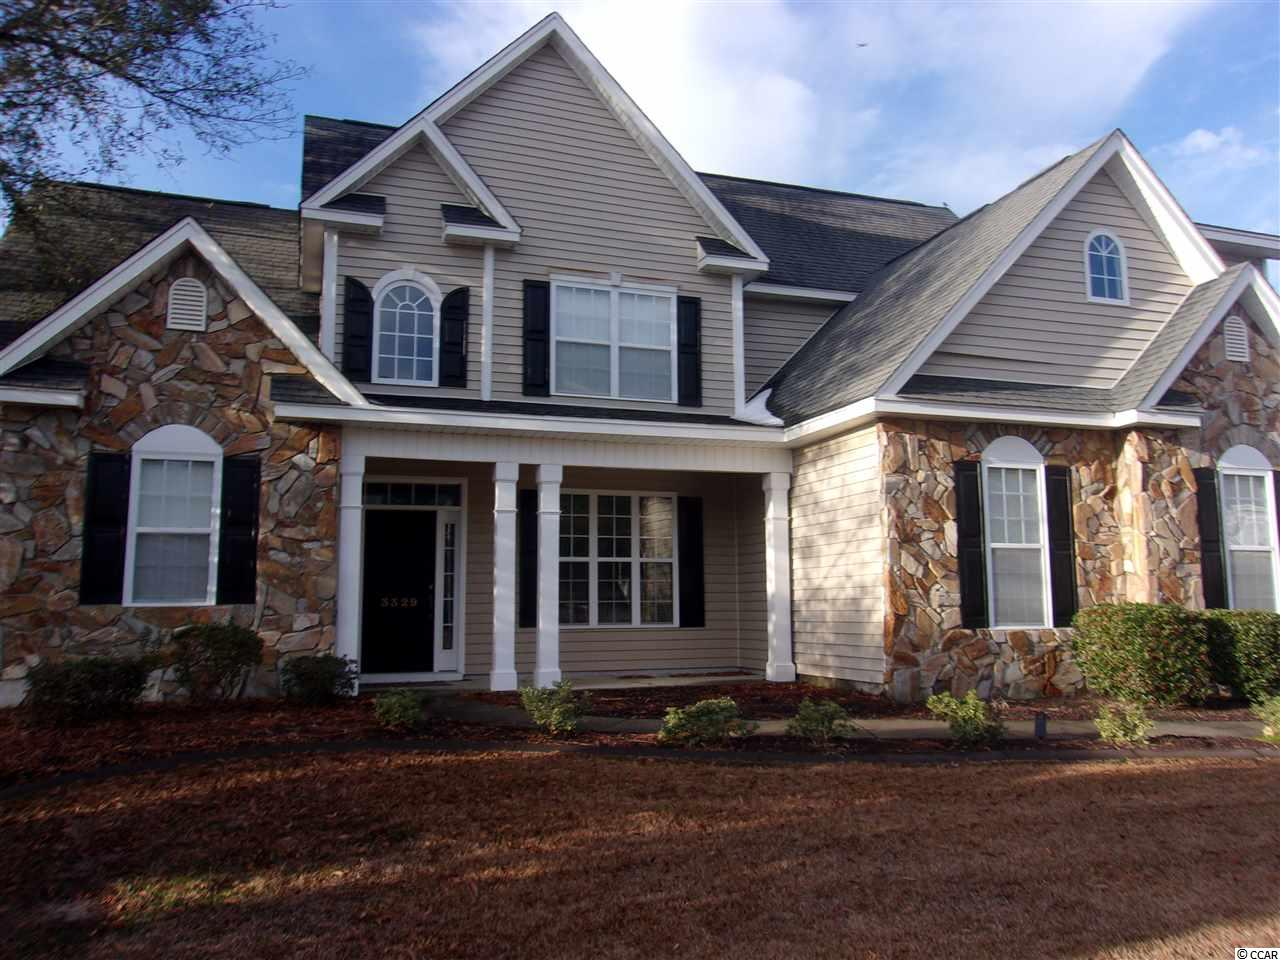 Single Family Home for Sale at 3329 Prioloe Drive 3329 Prioloe Drive Myrtle Beach, South Carolina 29588 United States